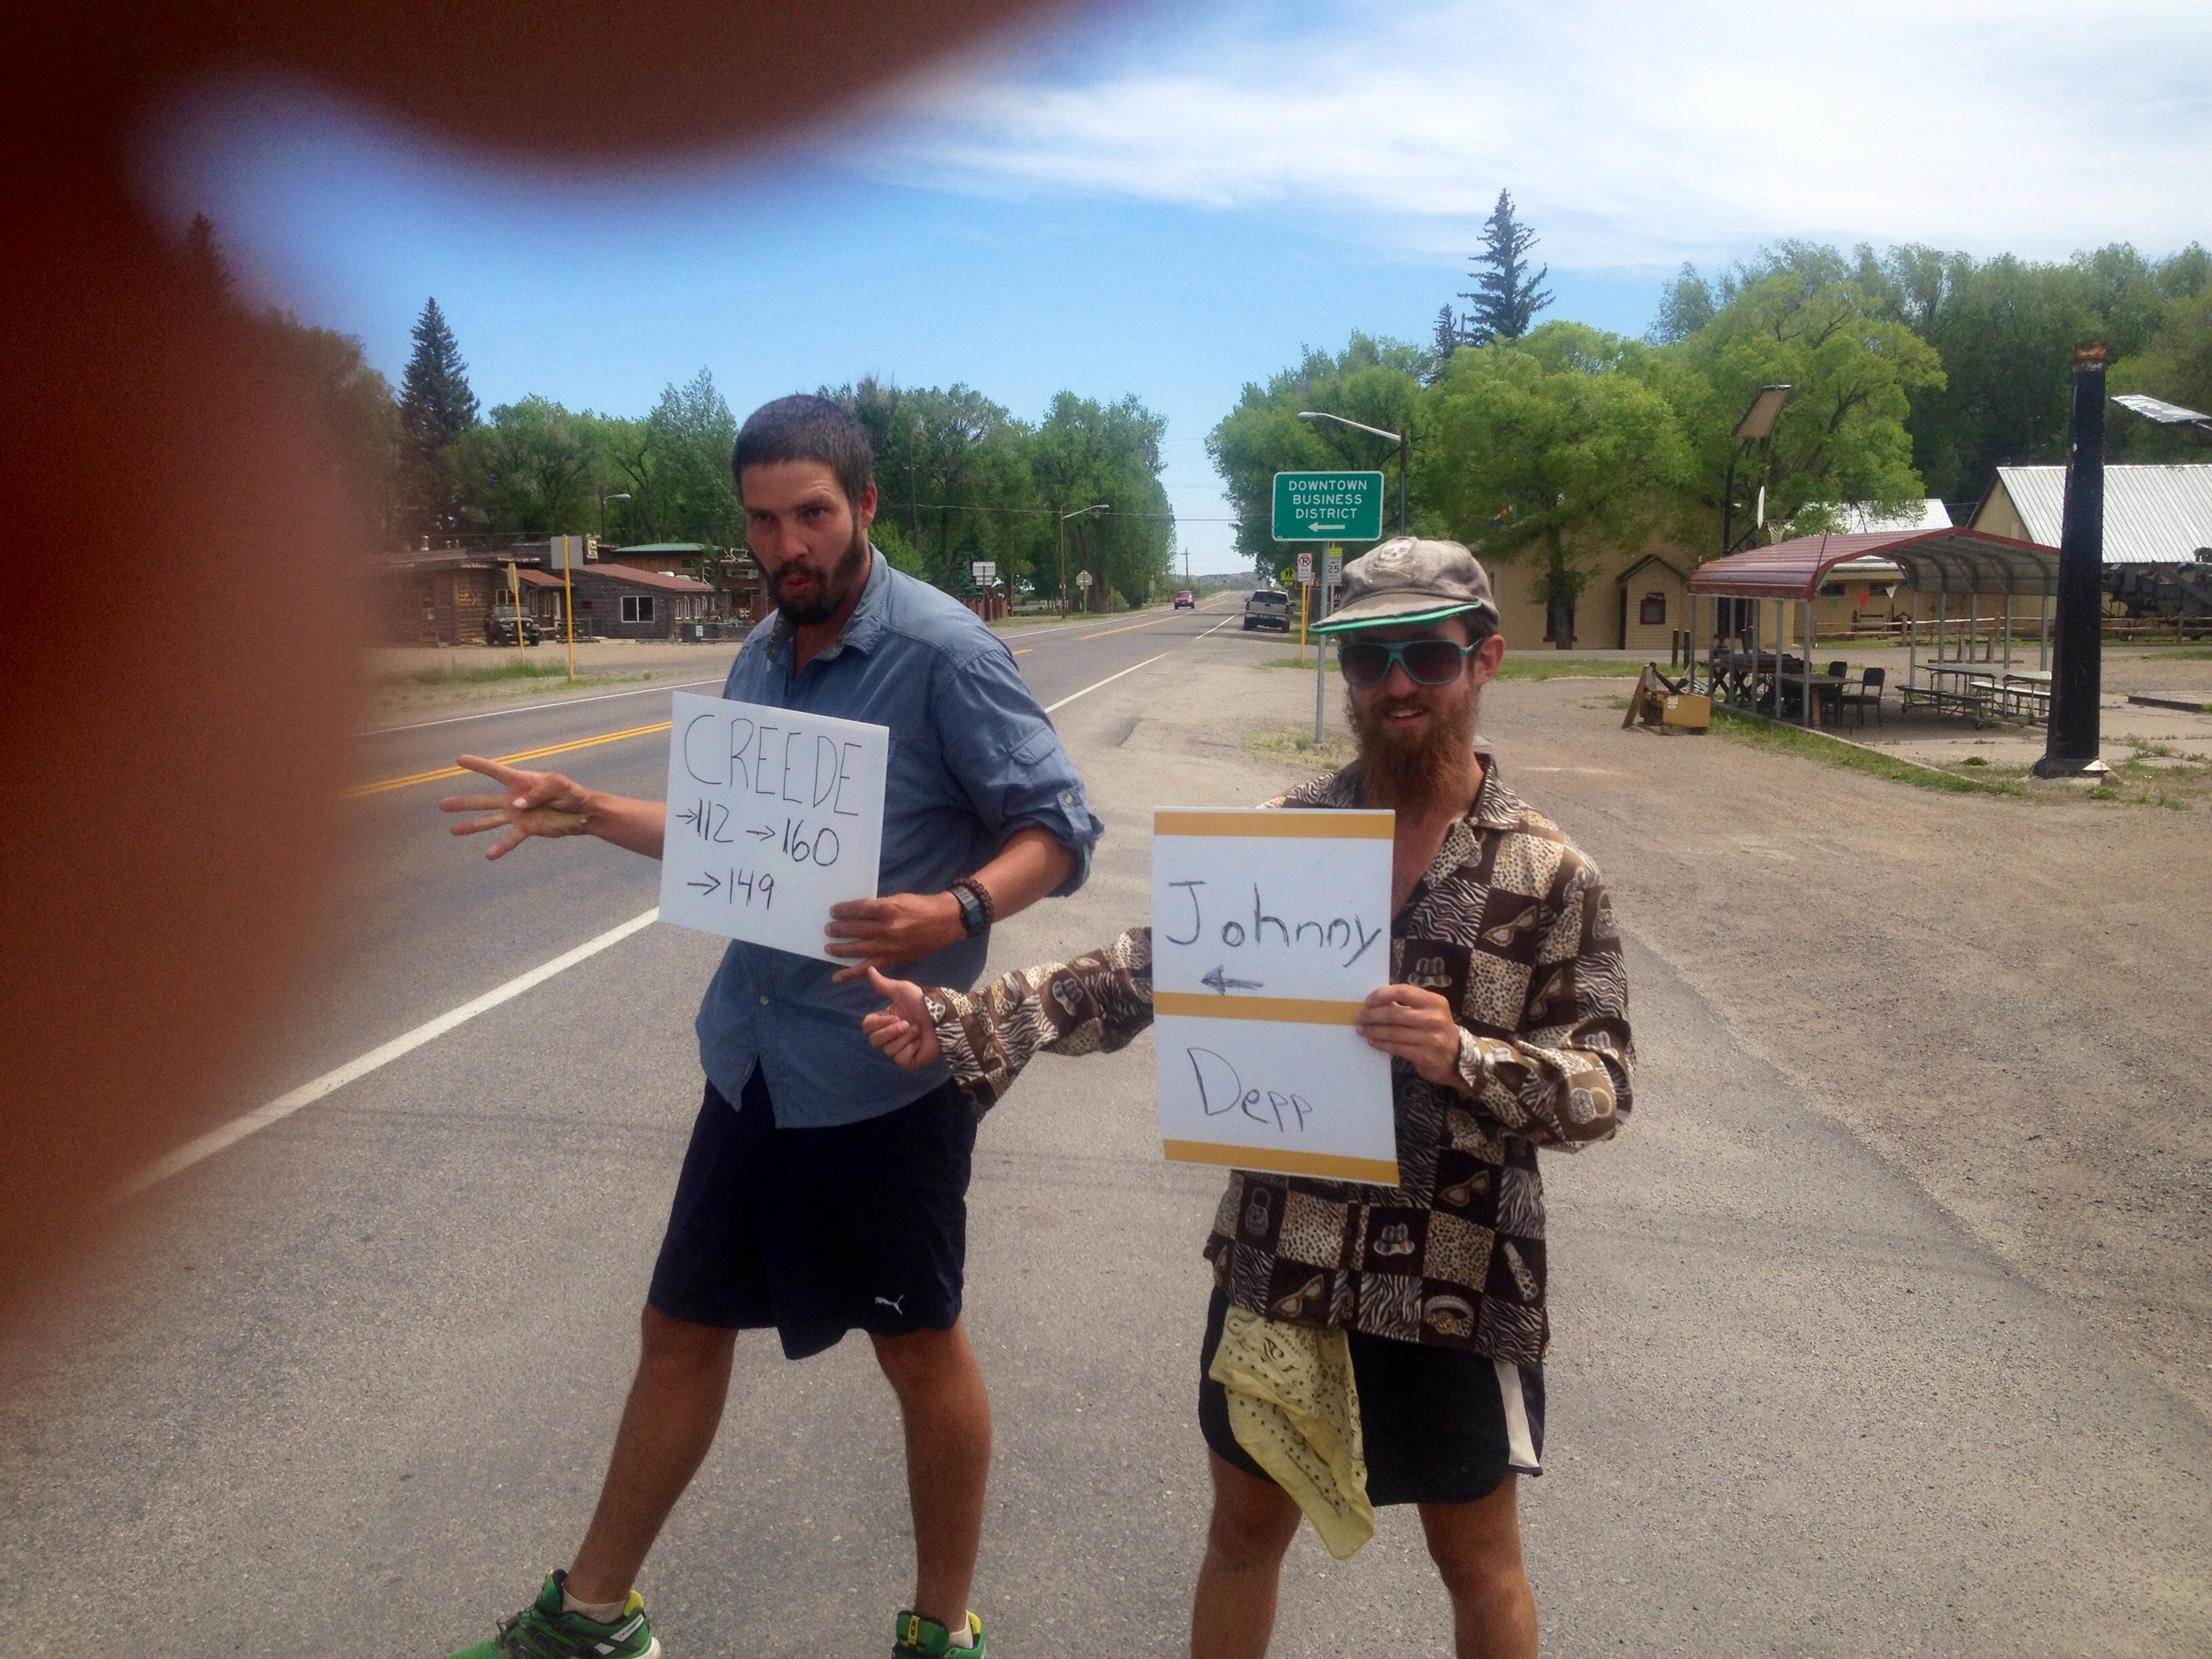 """Unconventional hitching maneuvers in Southern, CO. Signs read """"Creede"""" and """"Johnny Depp <---"""" It was worth a shot."""